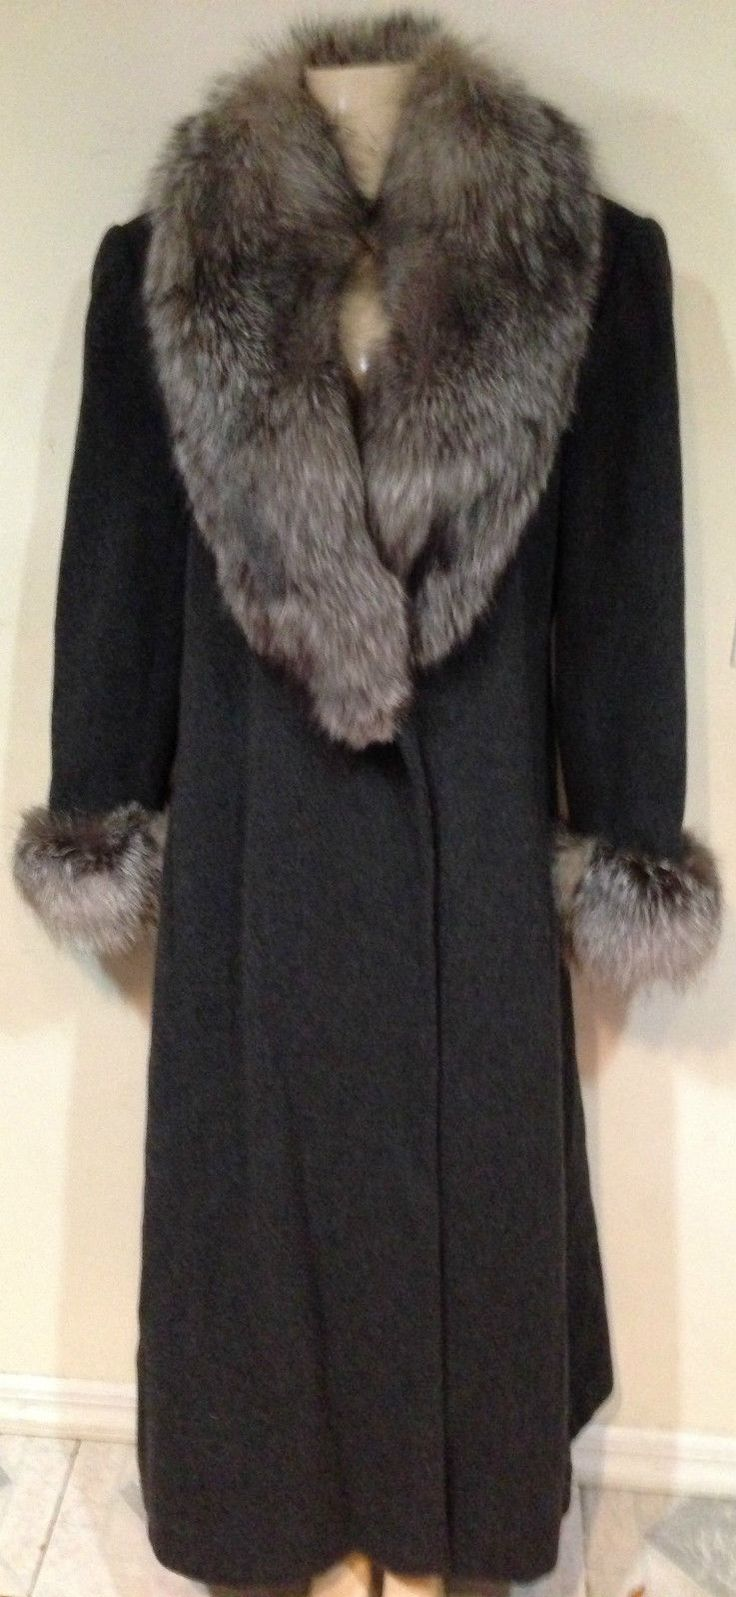 370 best Coats & Jackets images on Pinterest | Fur collars ...